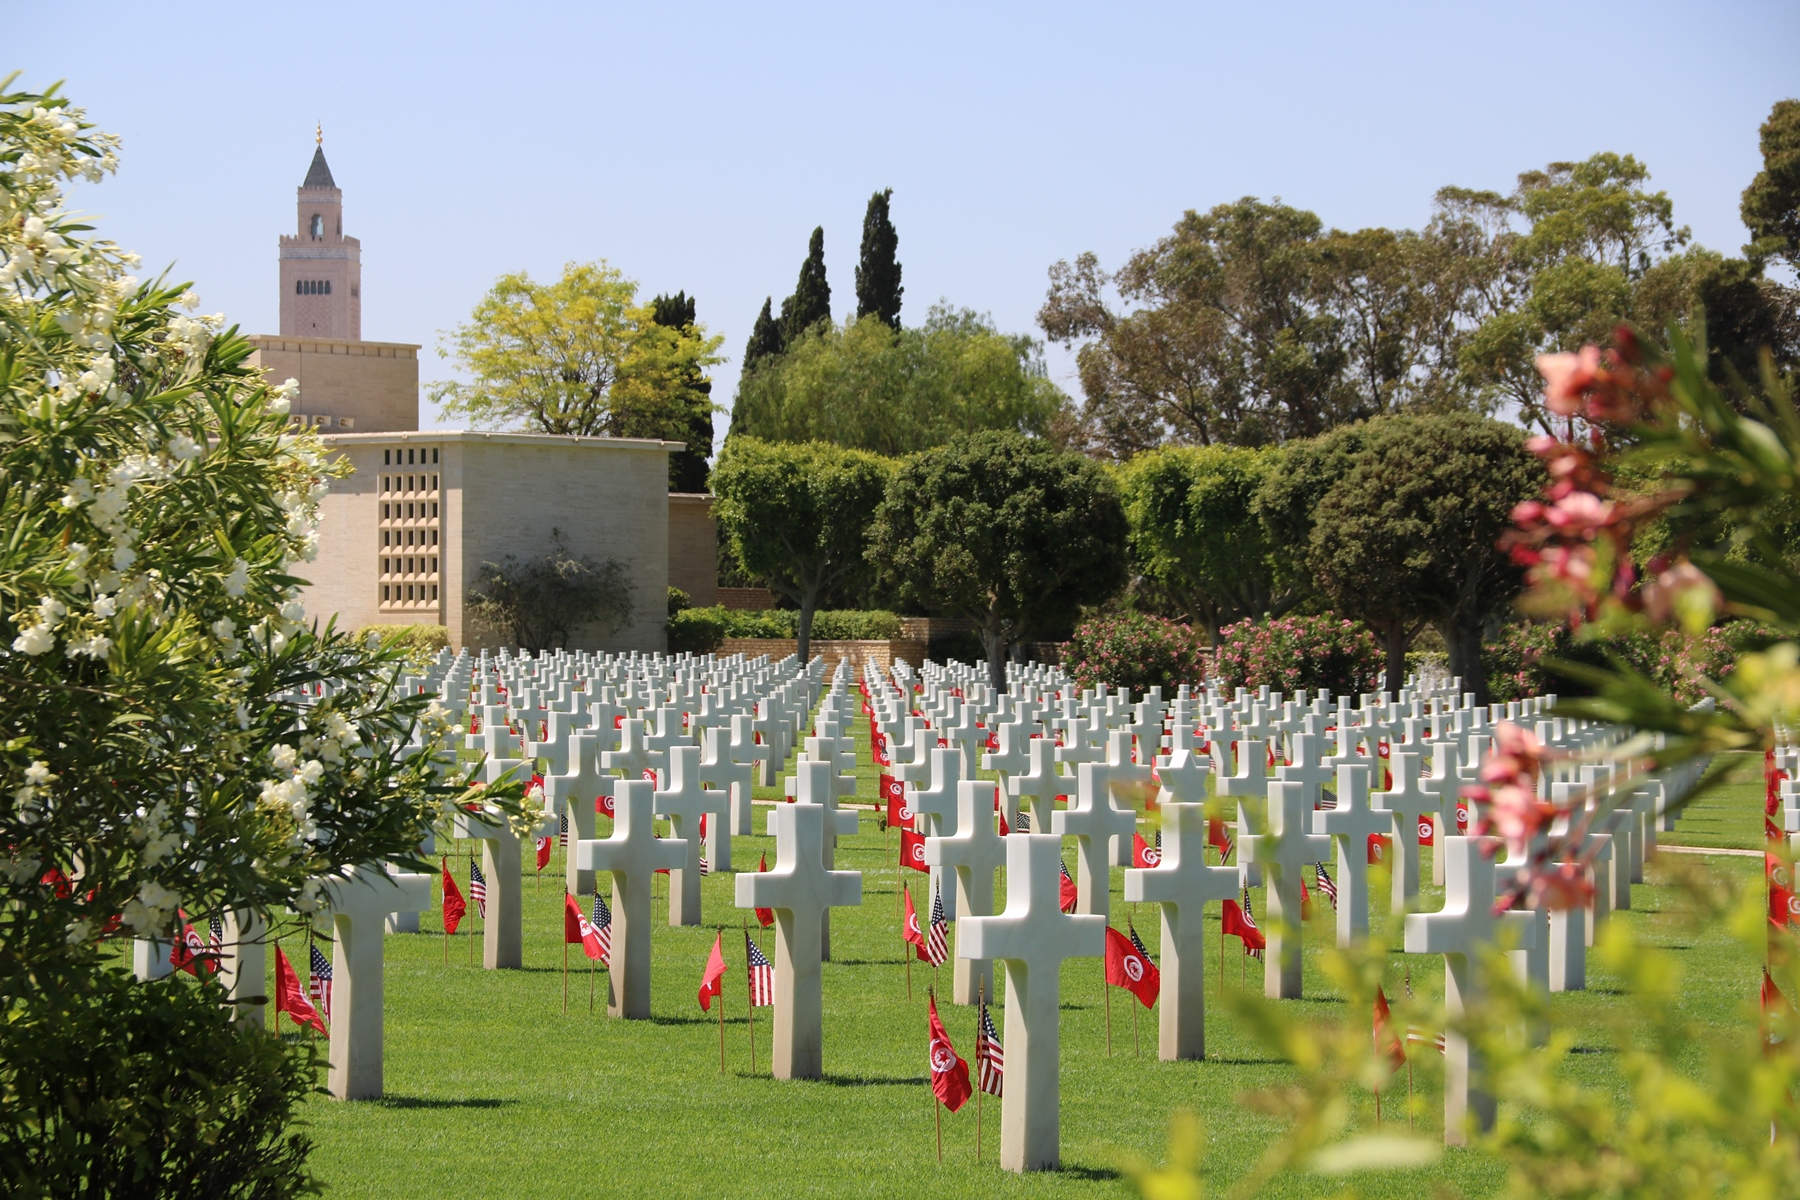 More than 6,500 U.S. service members  are laid to rest or listed as missing in action at the North Africa American Cemetery and Memorial in Carthage, Tunisia. U.S. Africa Command leadership and U.S. Embassy officials participated in a Memorial Day ceremony May 29, 2017. (U.S. Embassy Tunis photo by Zouhair Sfaxi/Released)